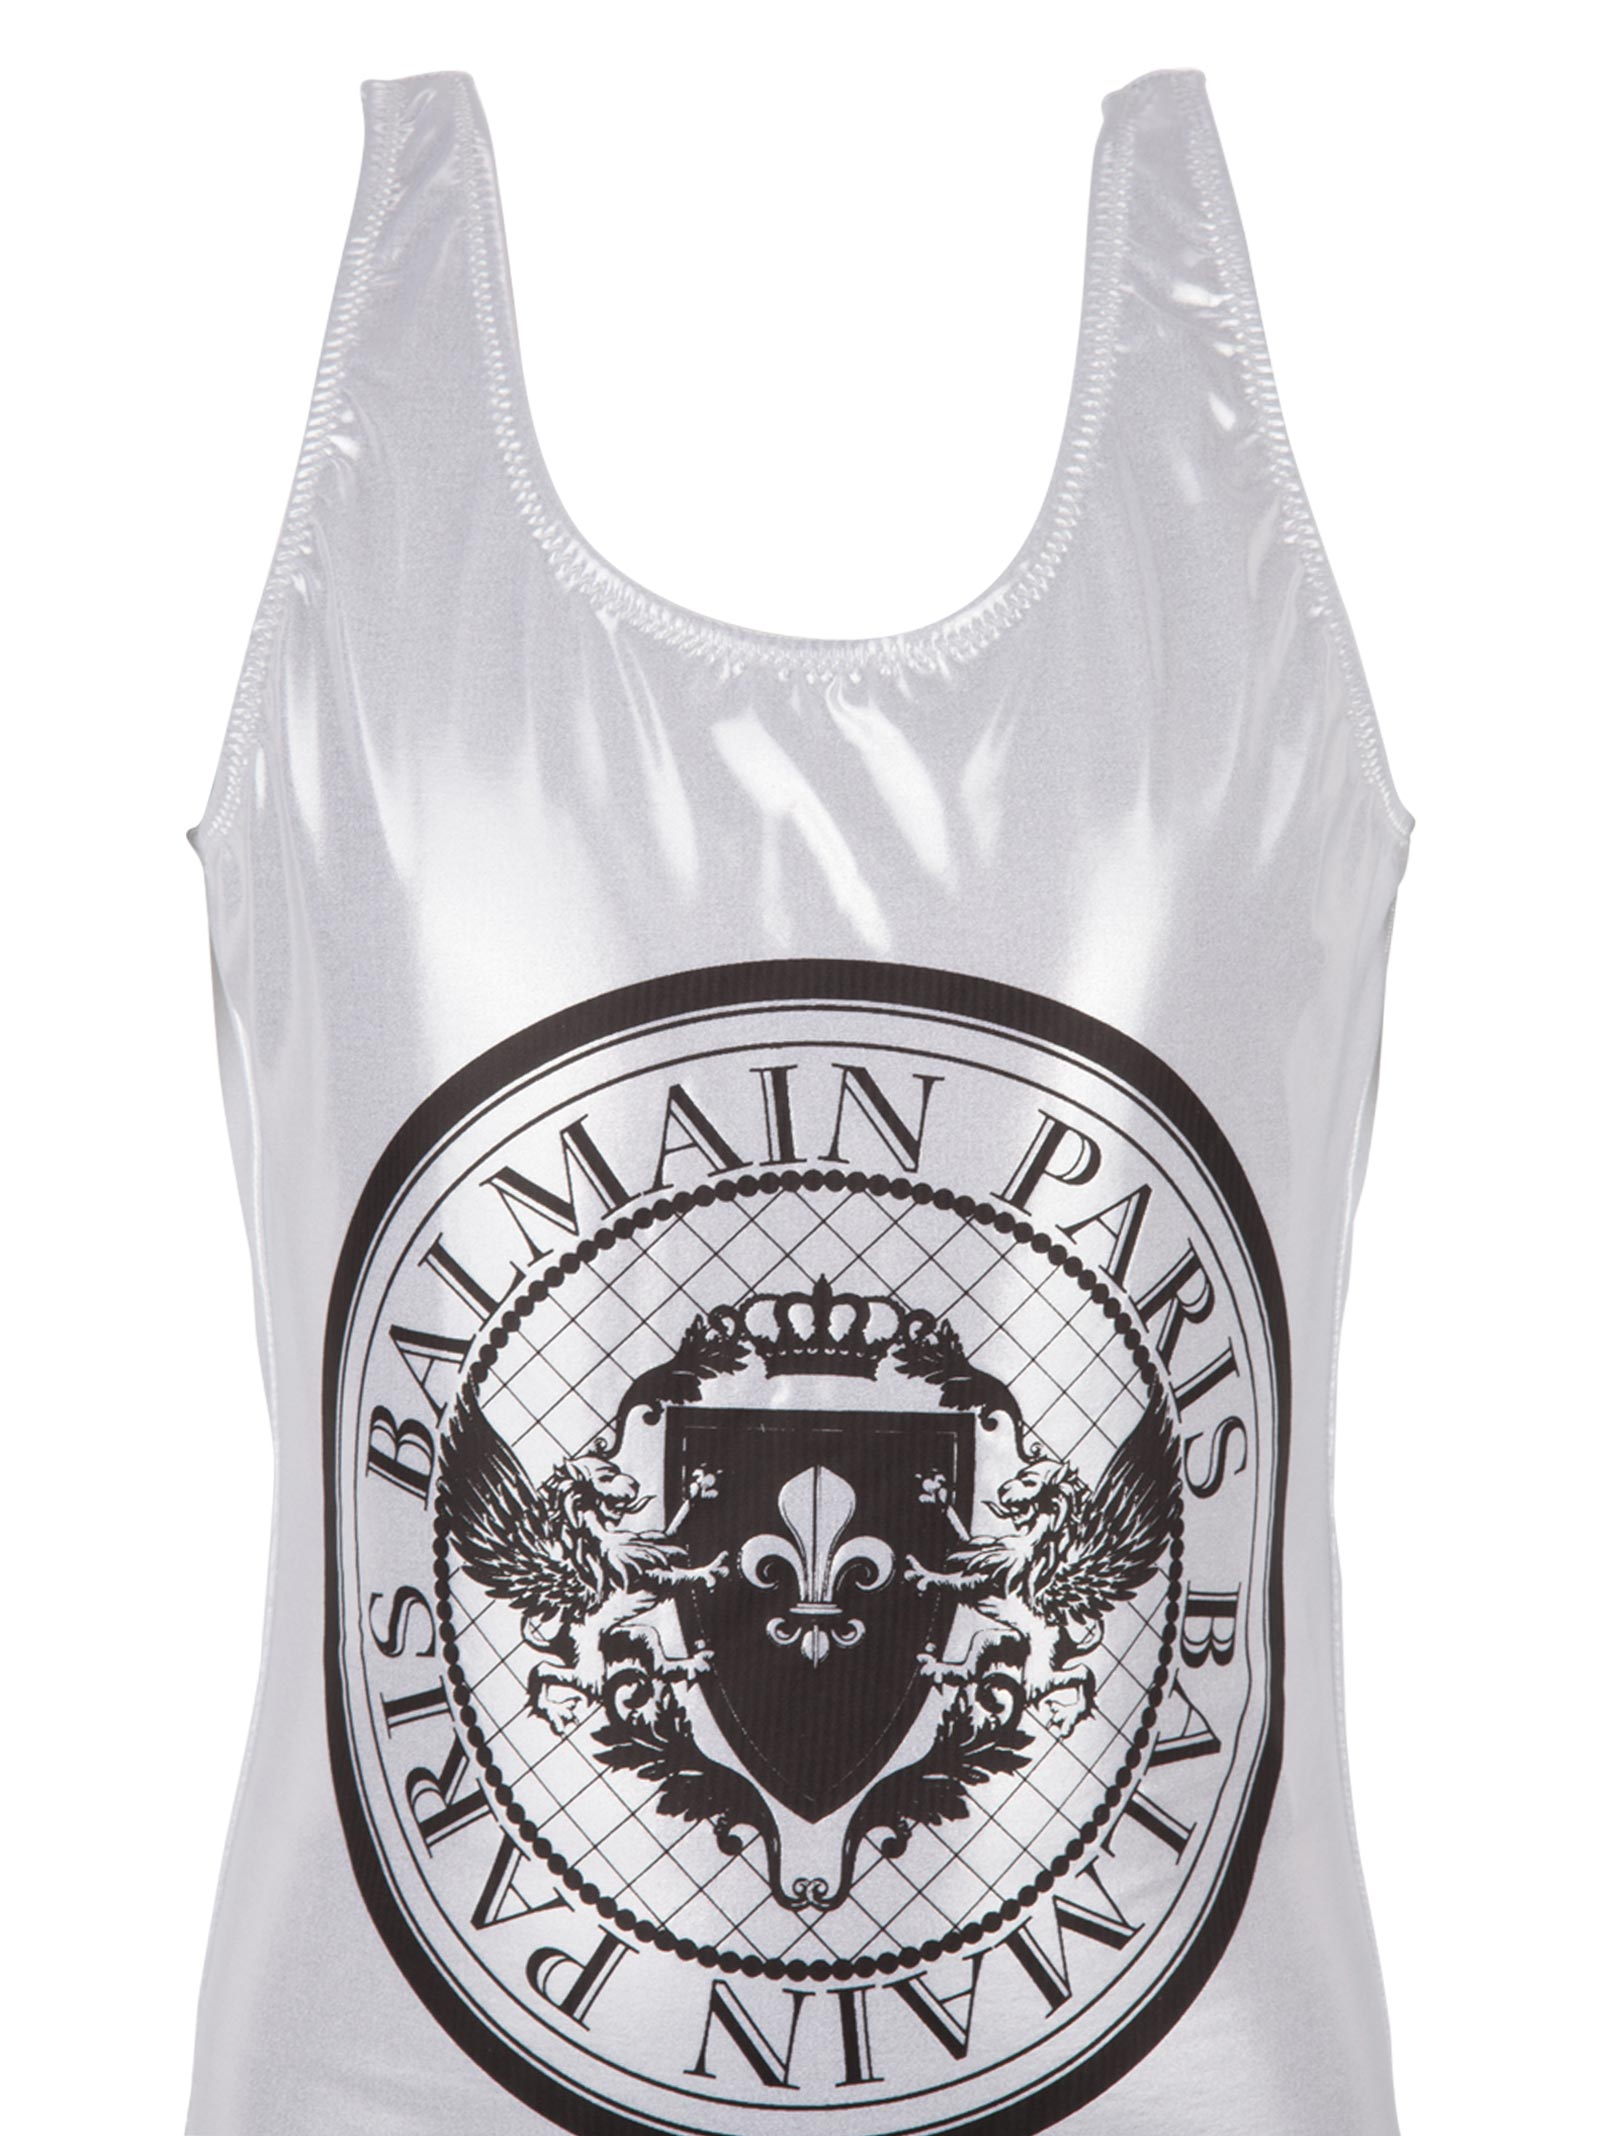 8fef1d074daaa Balmain Paris Kids swimsuit - BALMAIN PARIS KIDS - Michele Franzese Moda